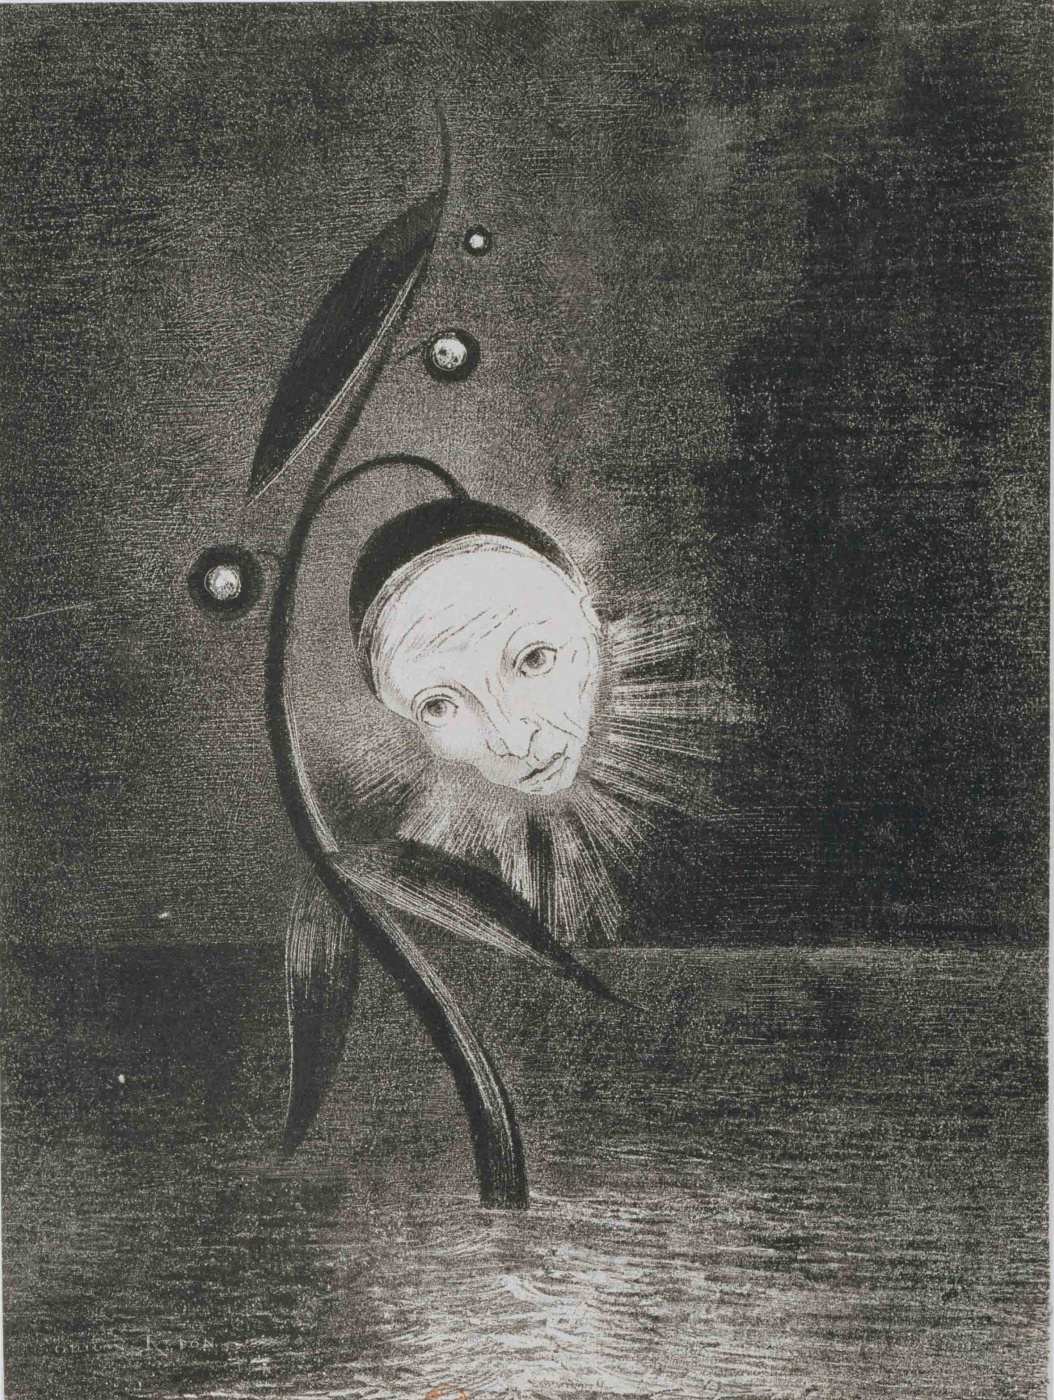 Odilon Redon. The Marsh Flower, a Sad Human Head